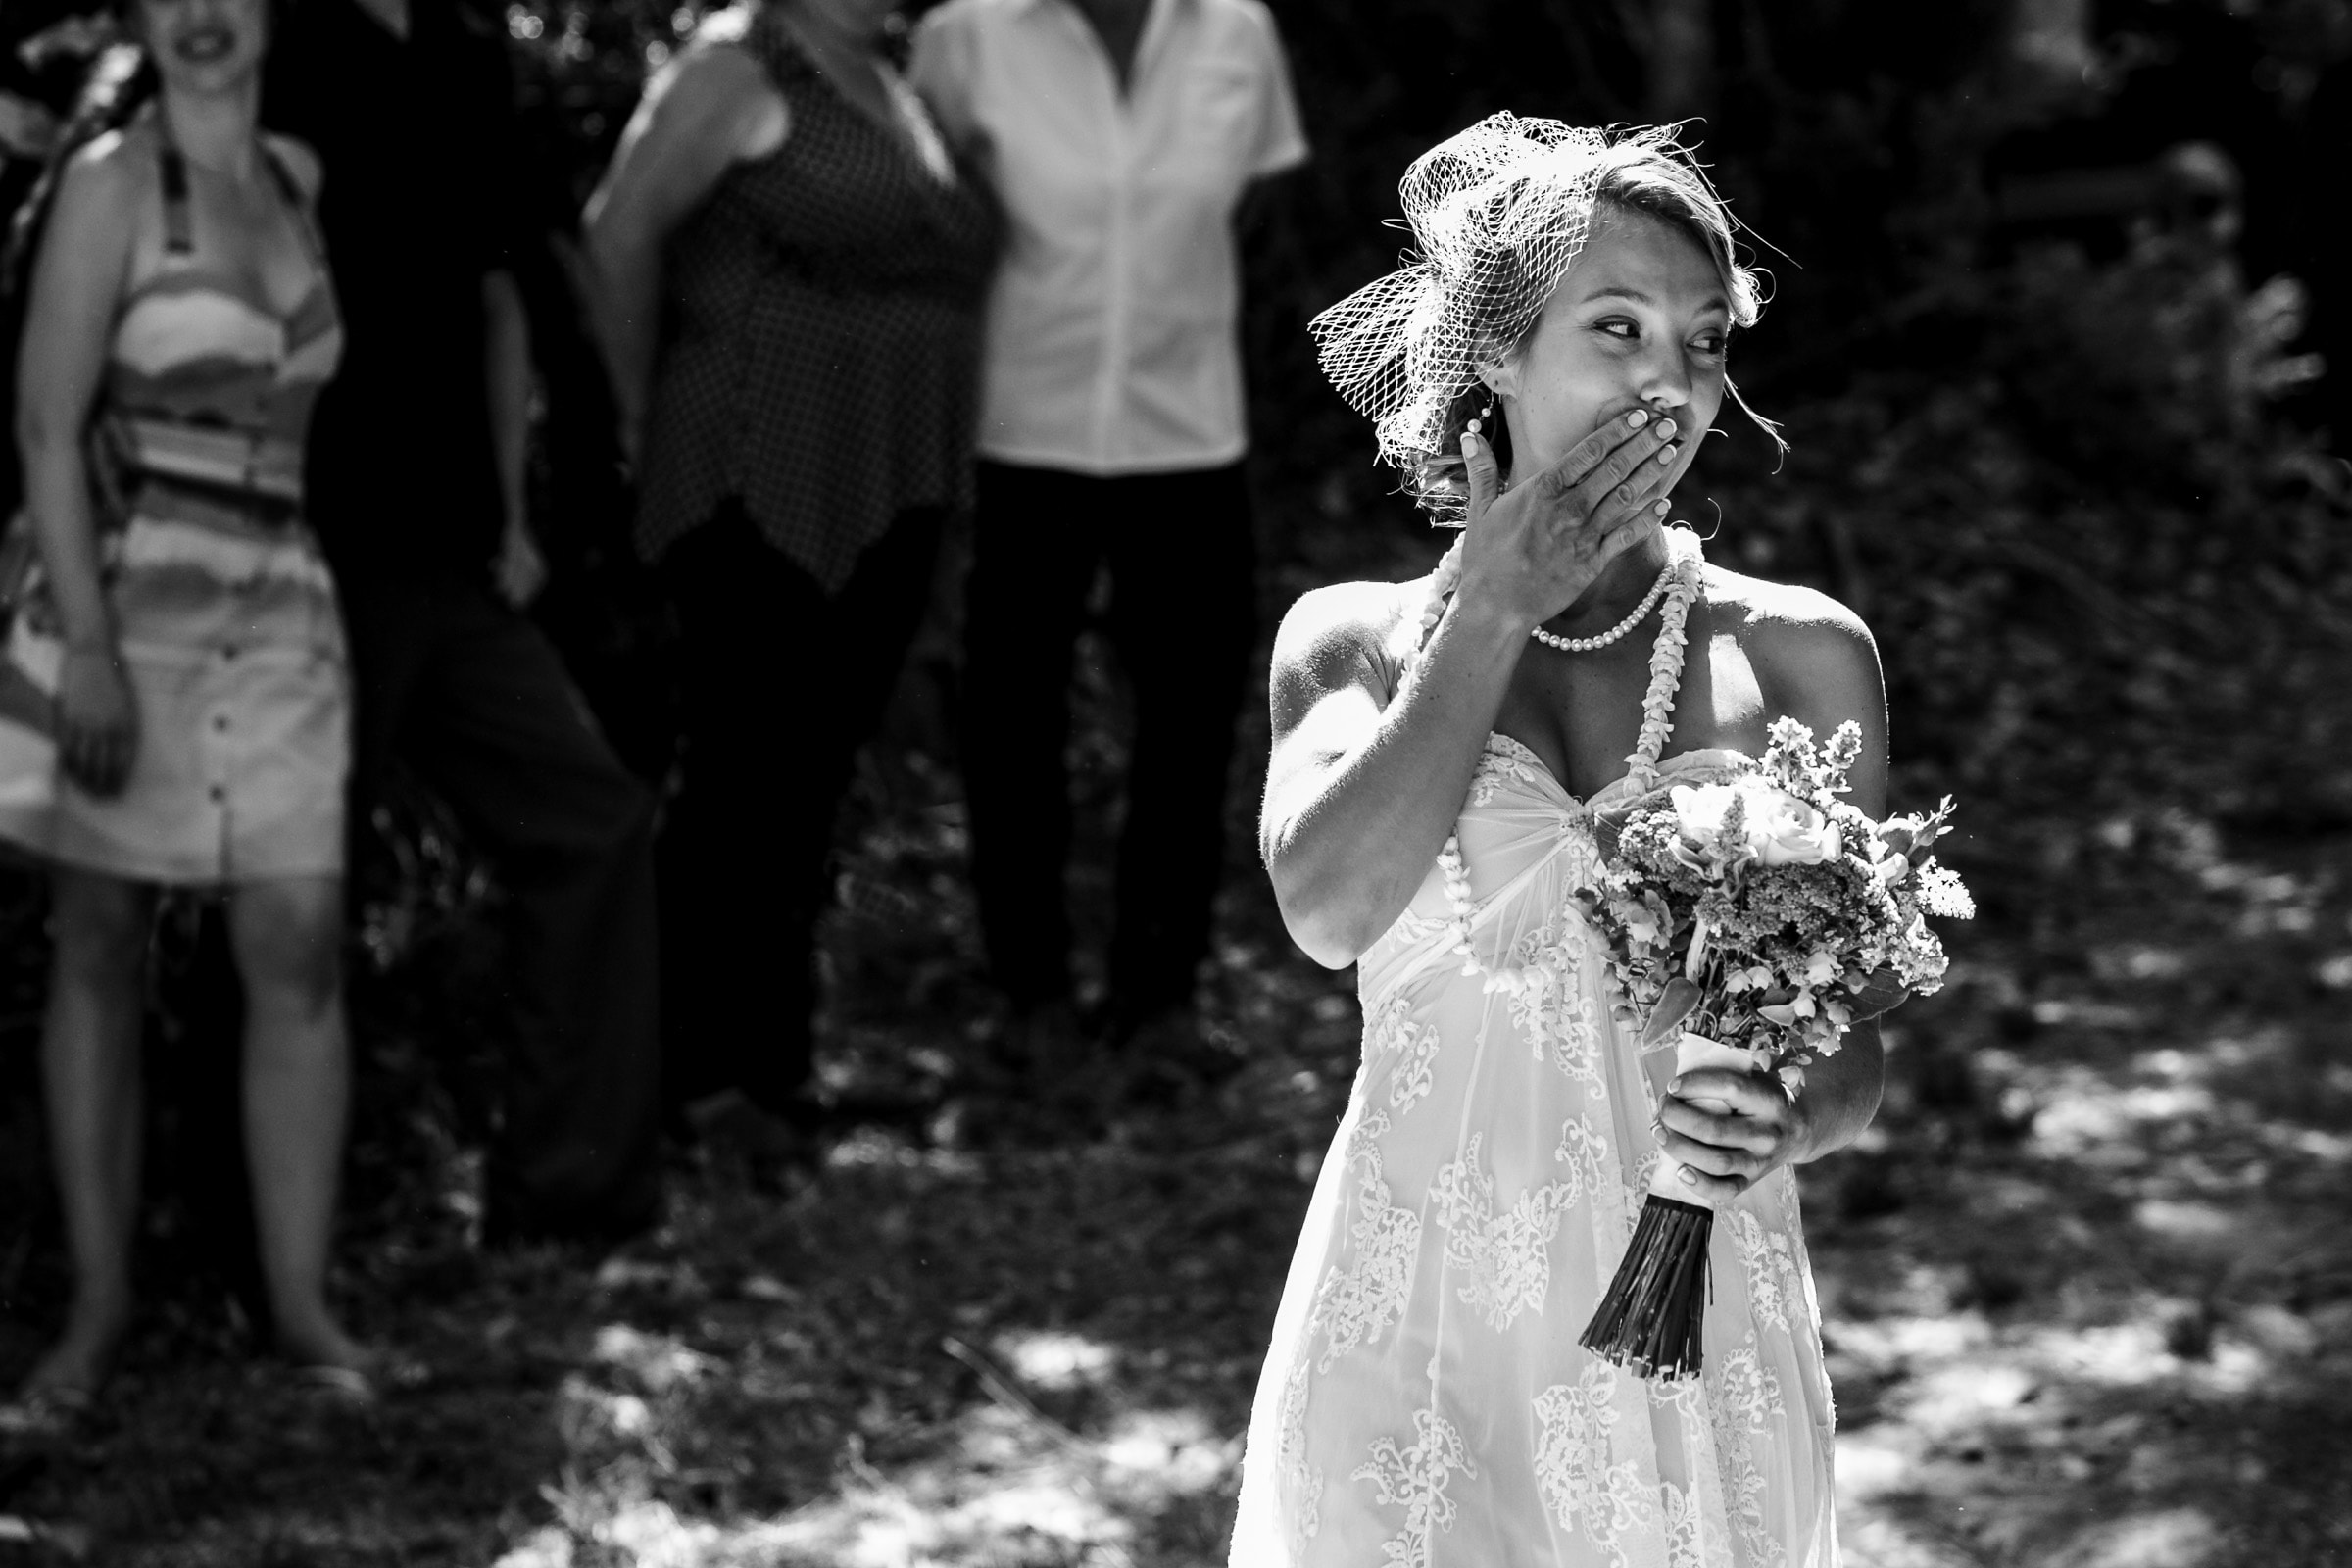 A bride blowing kisses to family and friends during a Humboldt California wedding ceremony at Beginnings Briceland